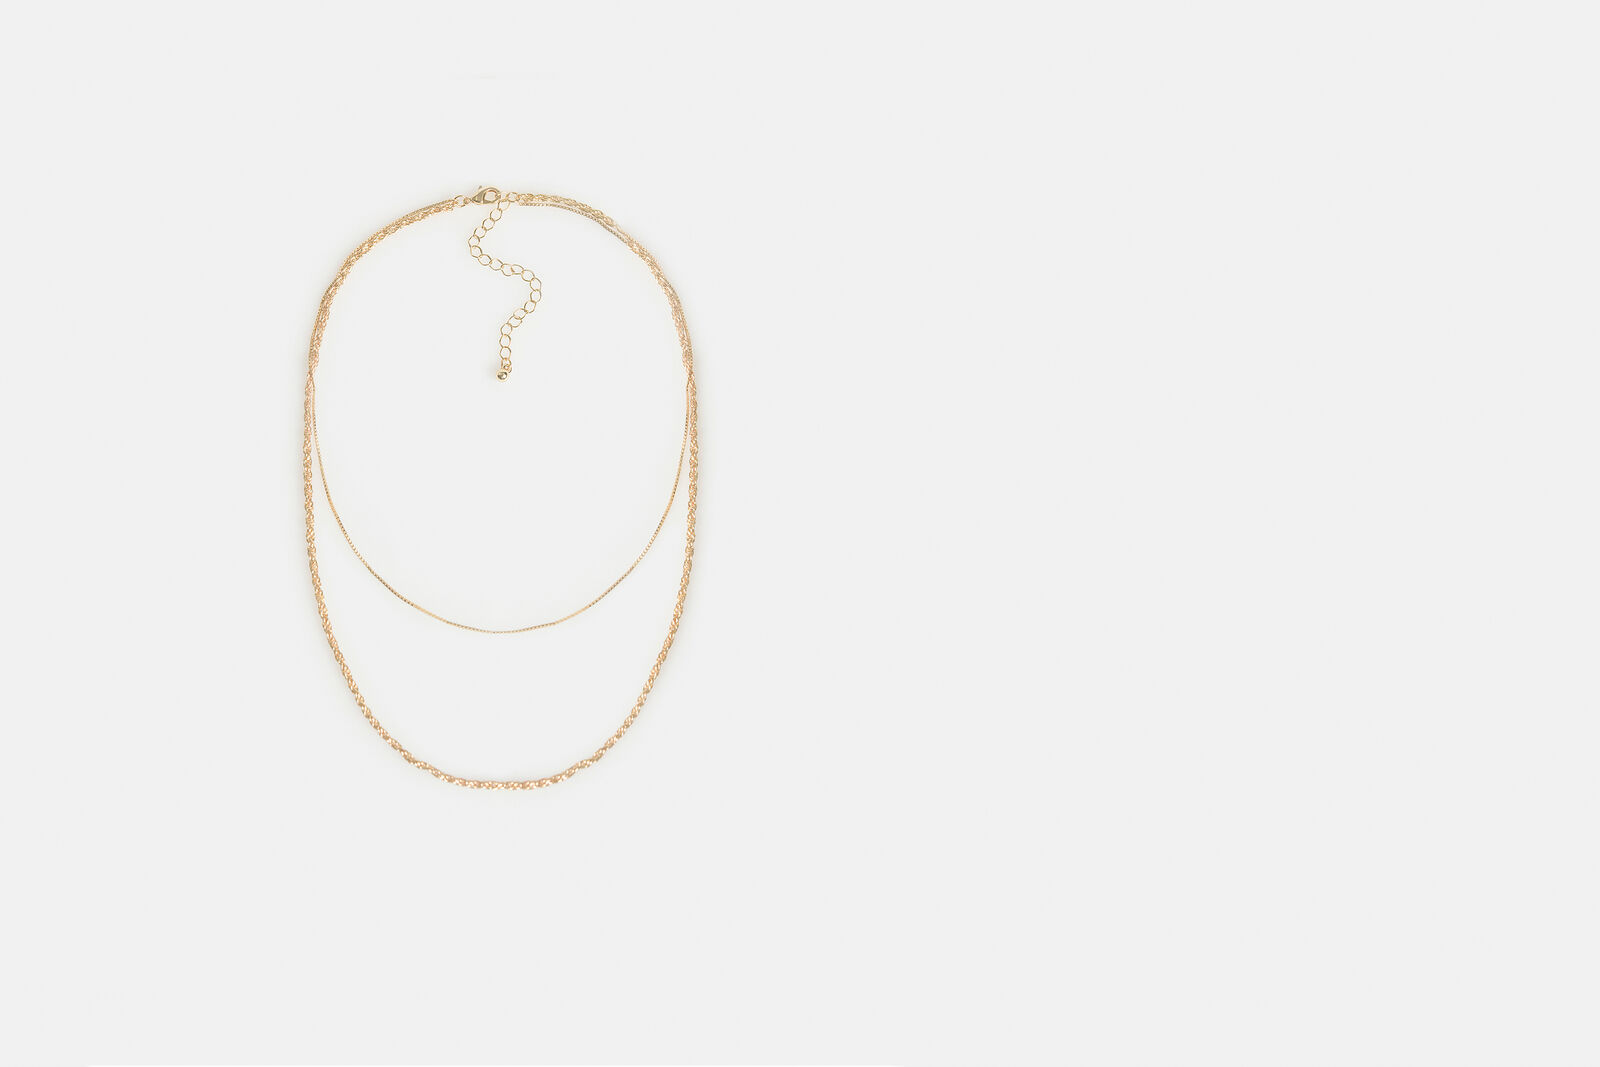 Tilly Ketting